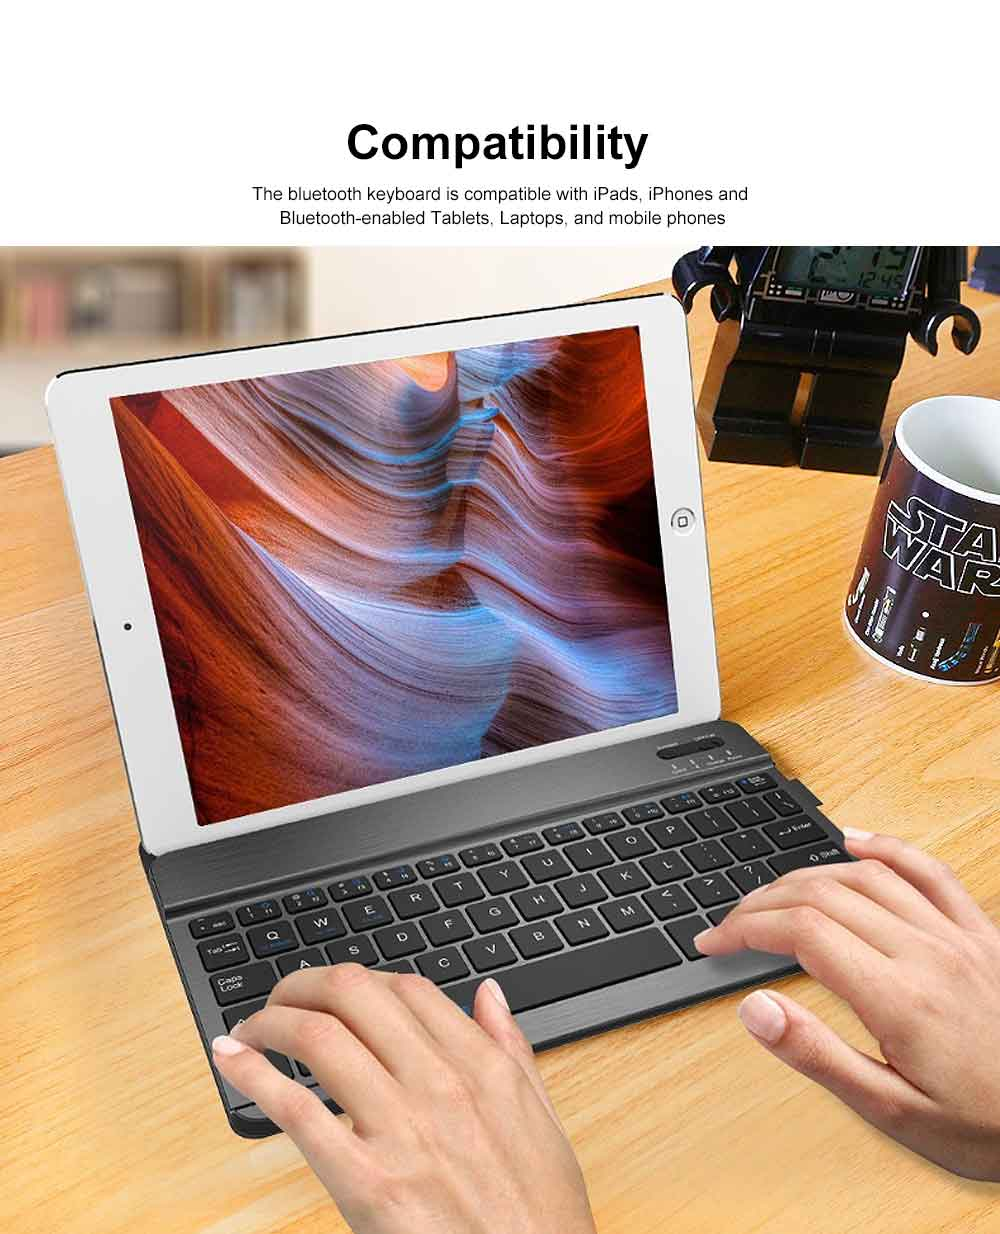 Ultra-Slim Bluetooth Keyboard Durable Plastic with Comfortable Keycap for iPad Air, iPad Mini, iPhone 1